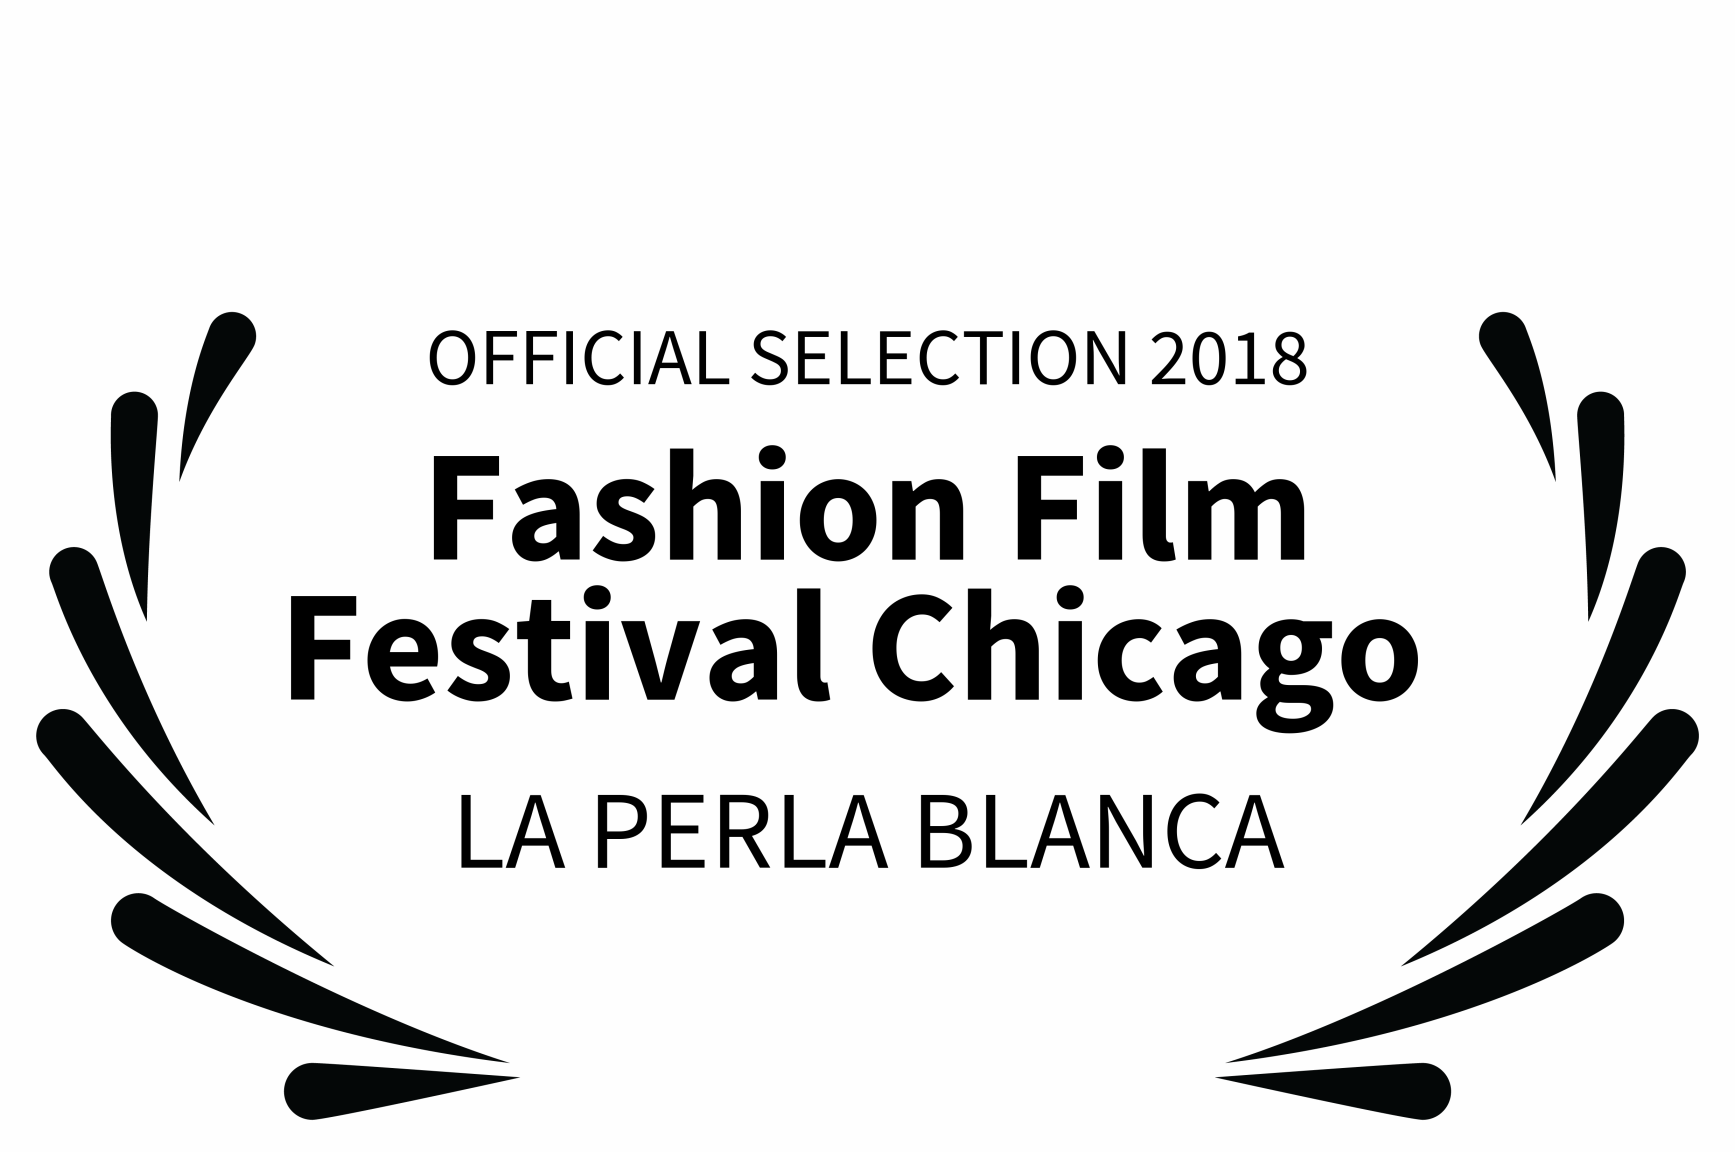 LAPERLA-SELECTION 2018 - Fashion Film Festival Chicago  - LA PERLA BLANCA